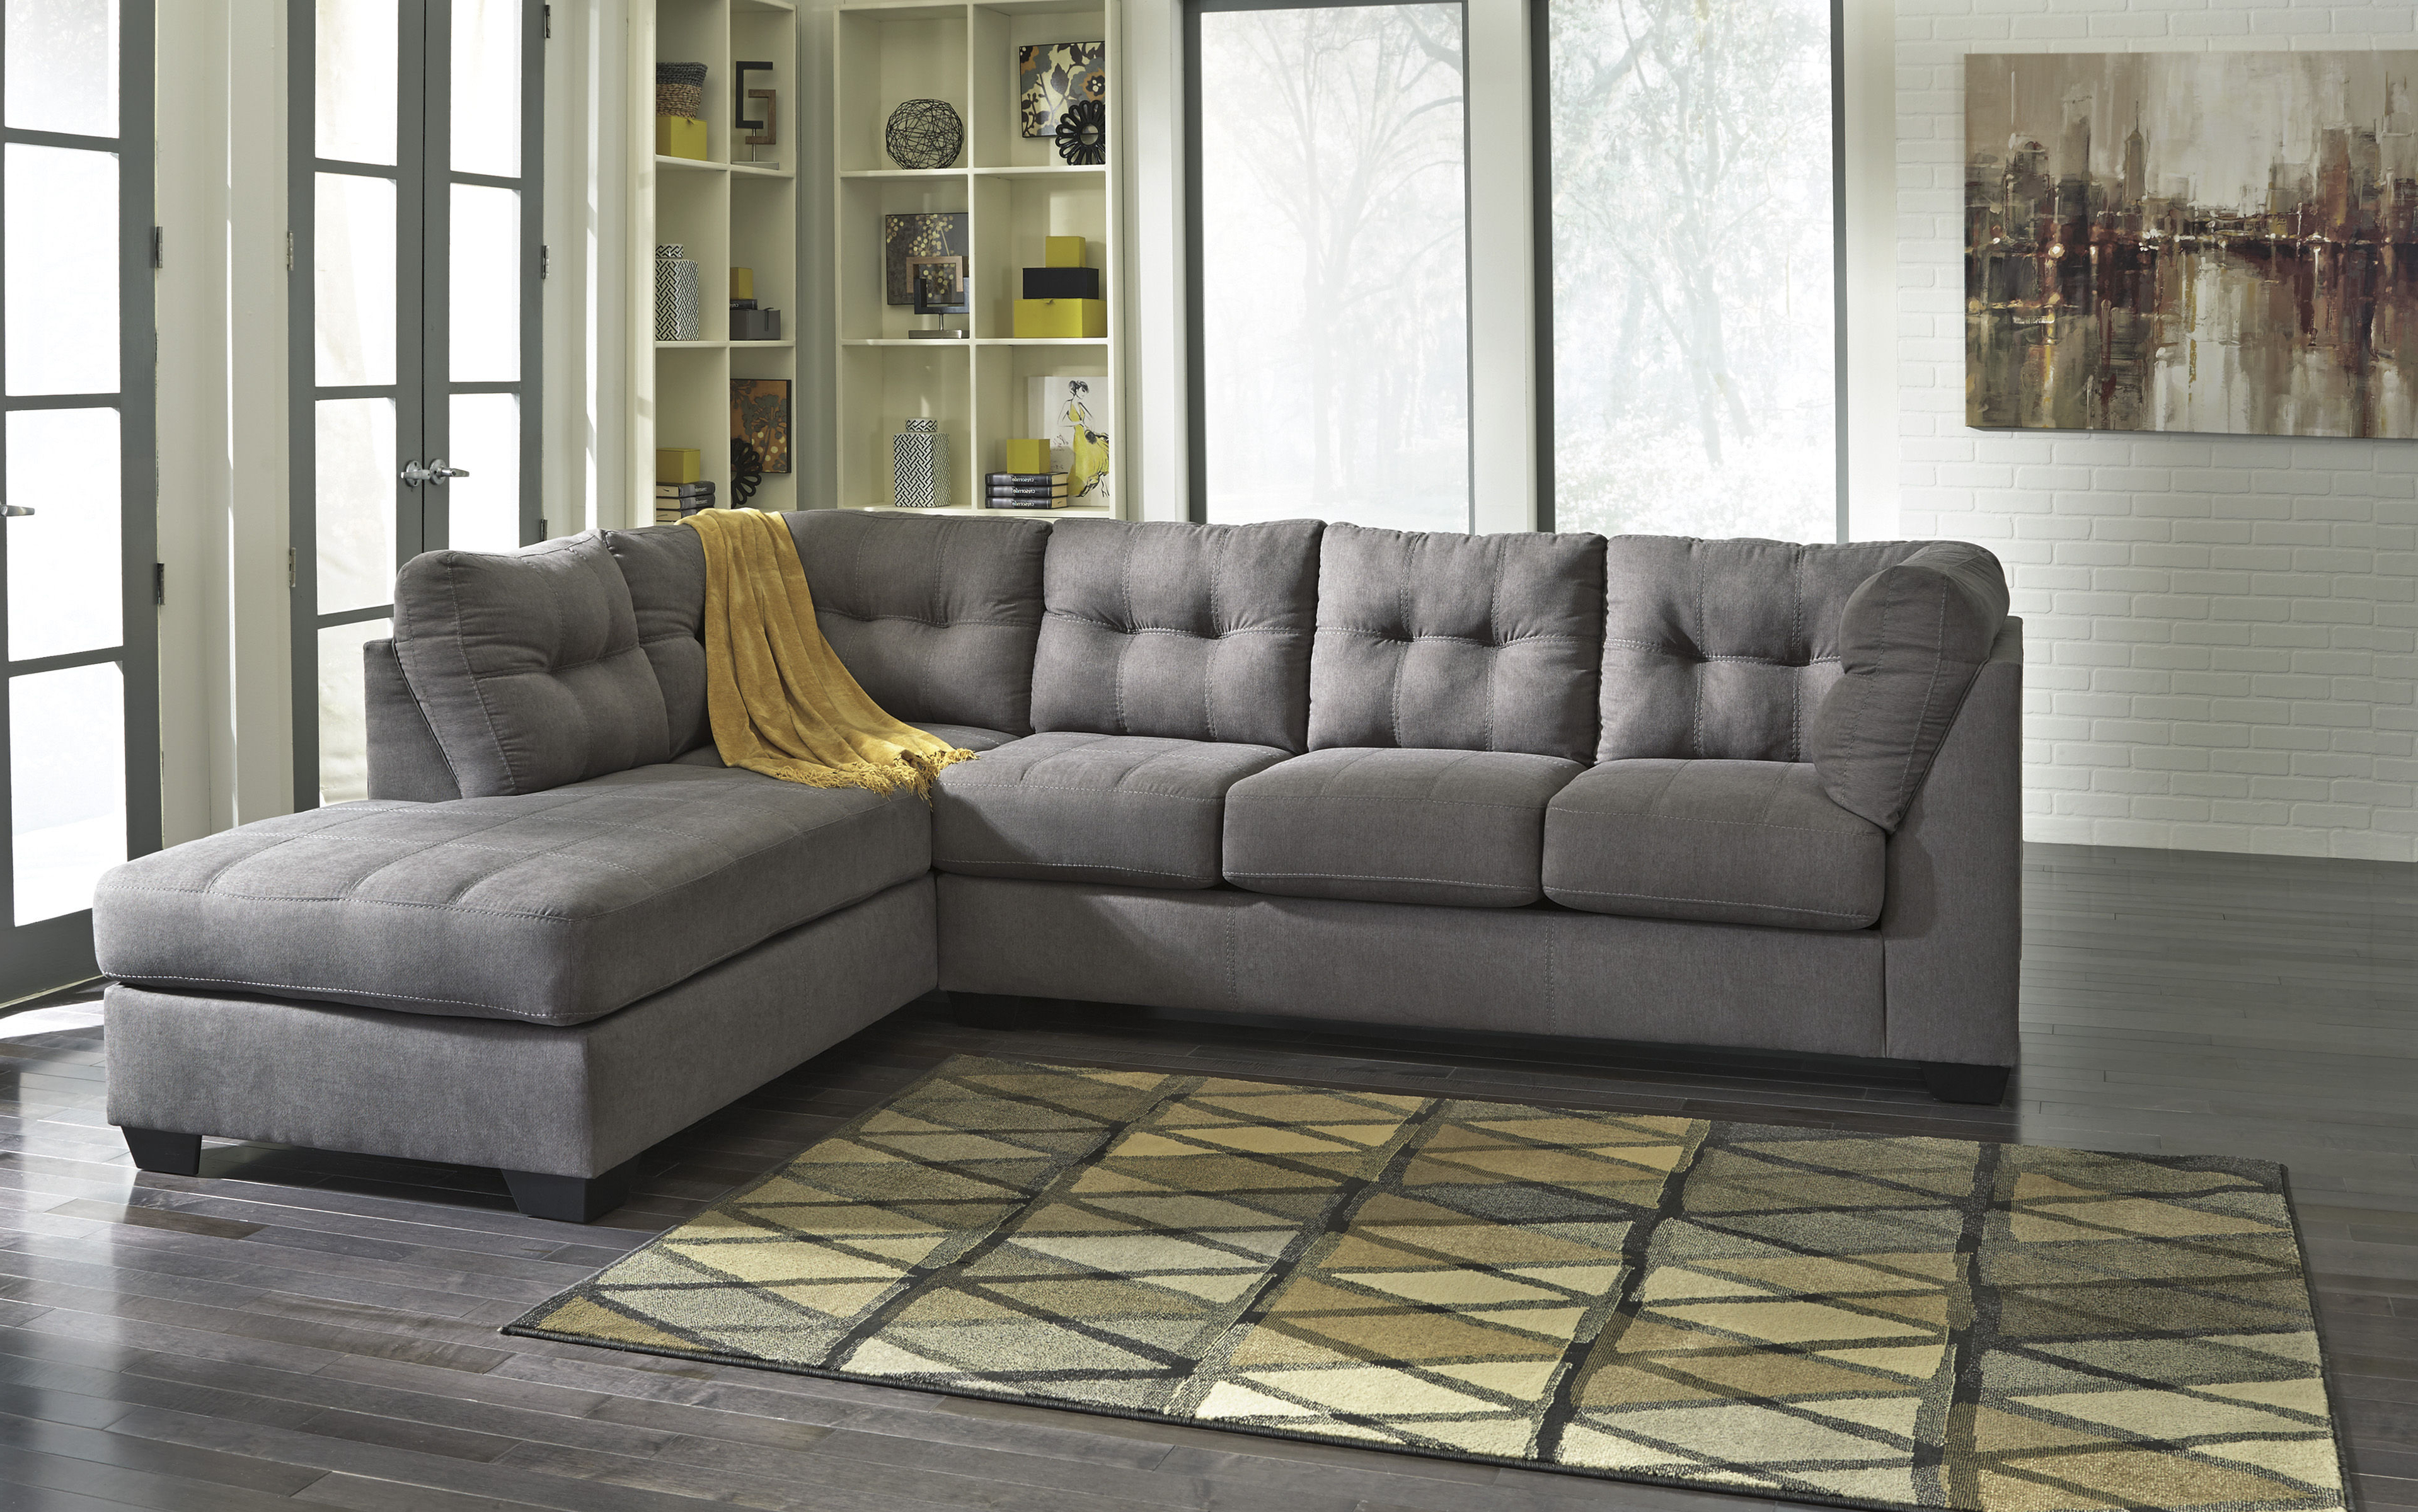 Lucy Dark Grey 2 Piece Sleeper Sectionals With Laf Chaise In Most Popular Ashley Furniture Maier Charcoal Raf Chaise Sectional (Gallery 5 of 20)